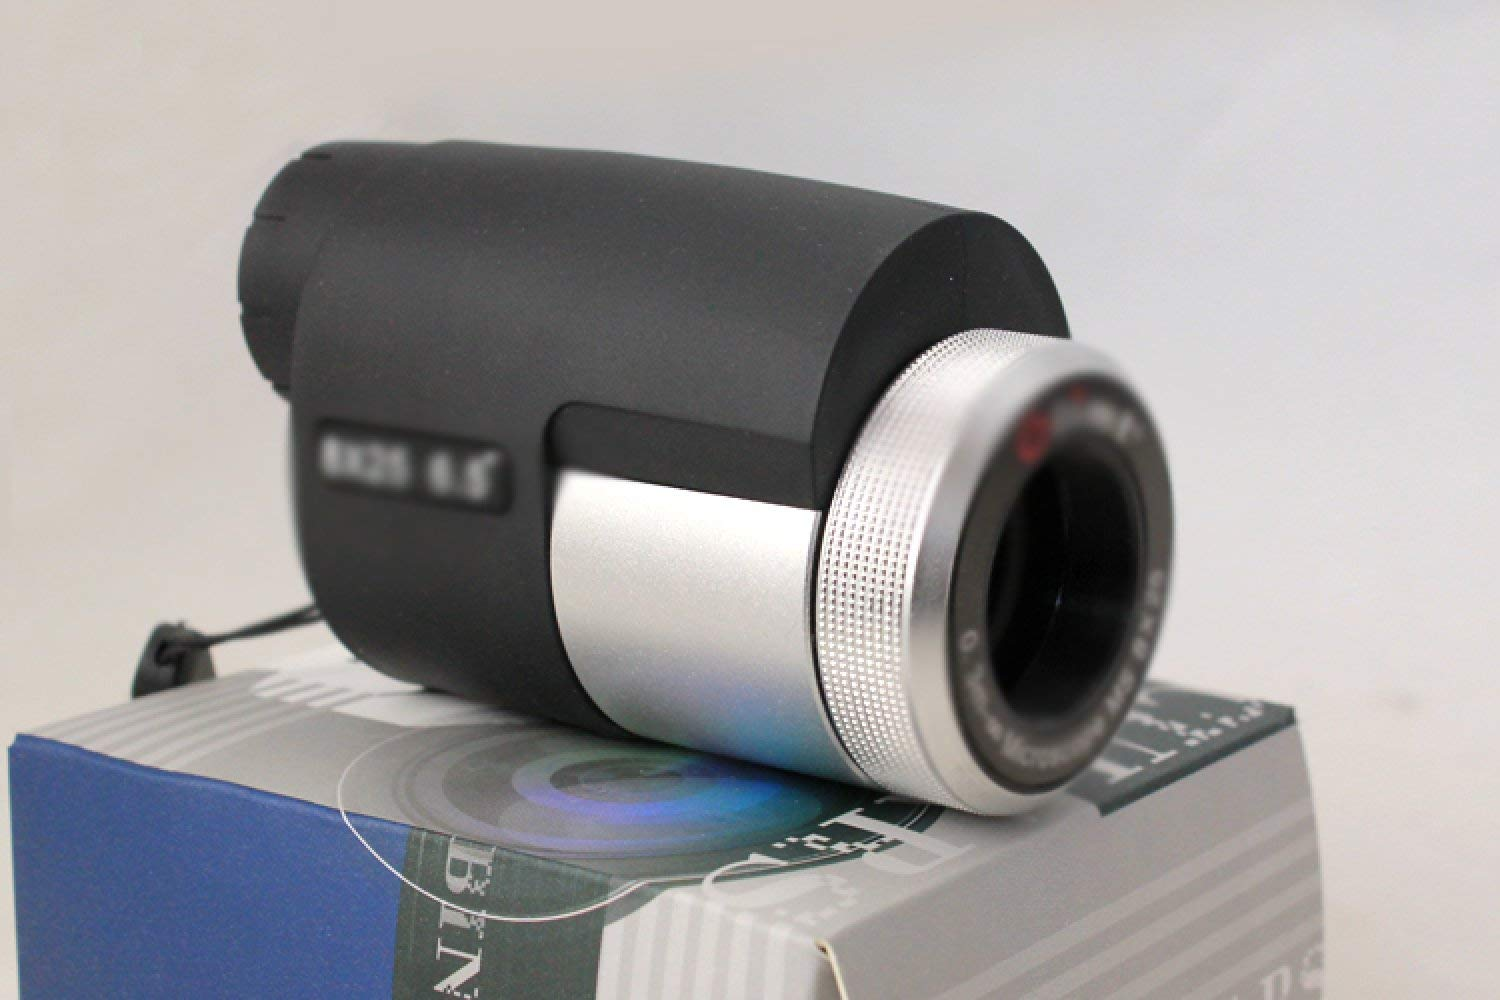 High powered compact monocular telescope zoom with dual